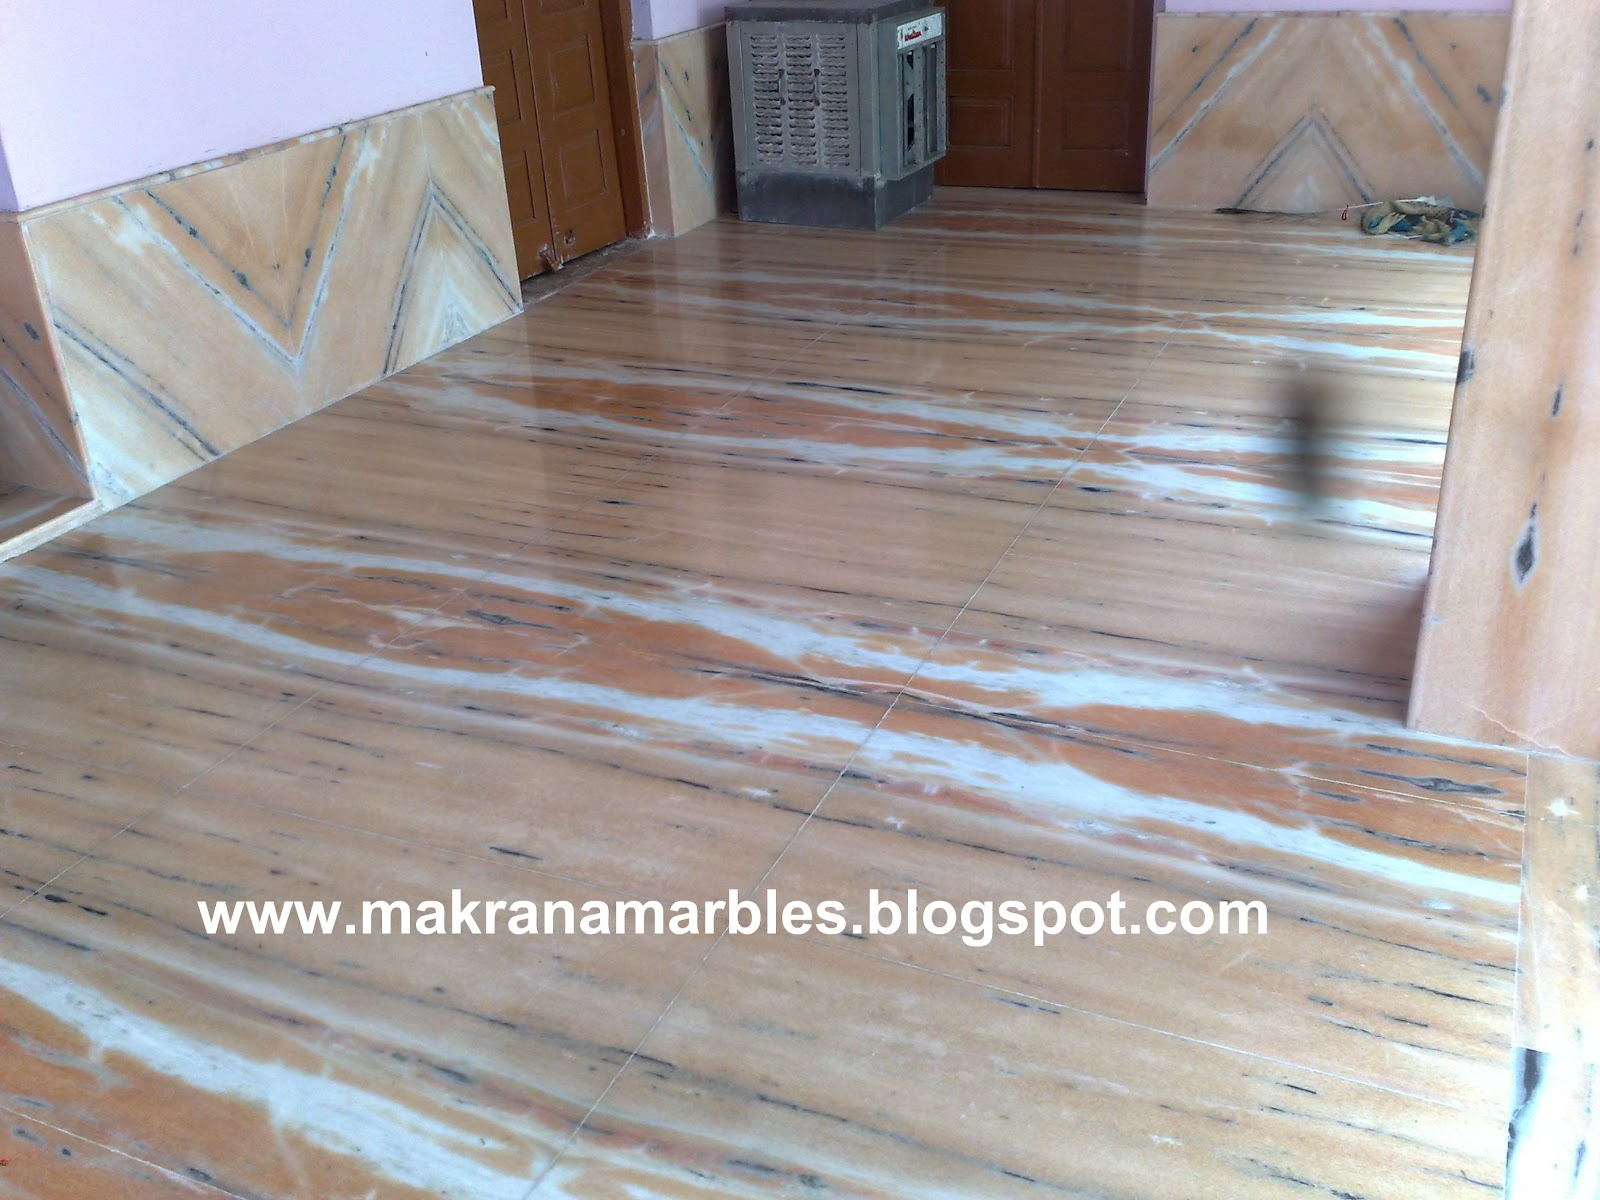 Makrana Marble Flooring Designs : Makrana marble product and pricing details about